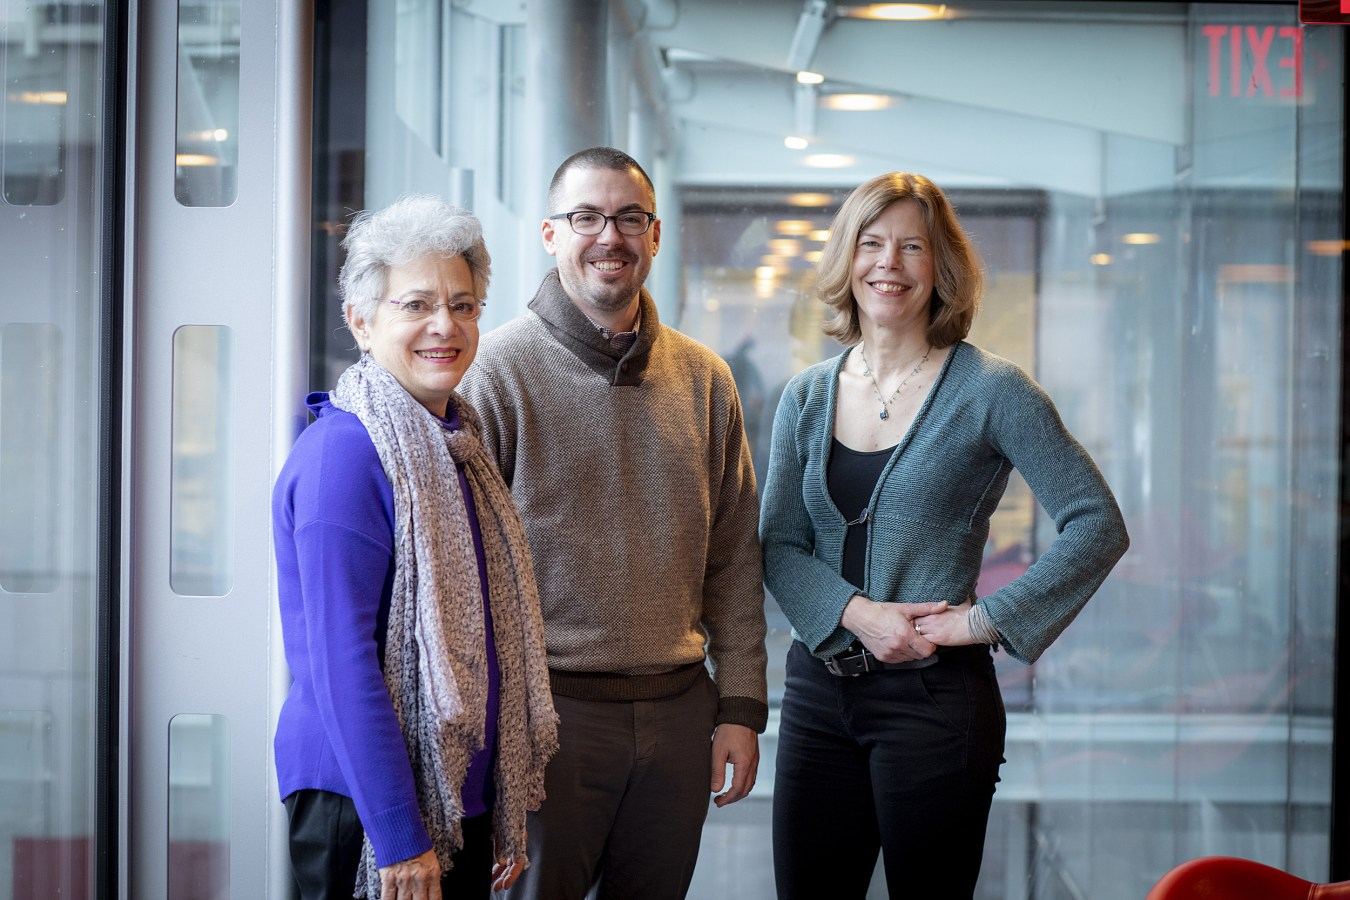 Barbara Grosz (from left), Jeffrey Behrends, and Alison Simmons hope Harvard's approach to turning out graduates who understand ethics as well as algorithms becomes a national model. Rose Lincoln/Harvard Staff Photographer